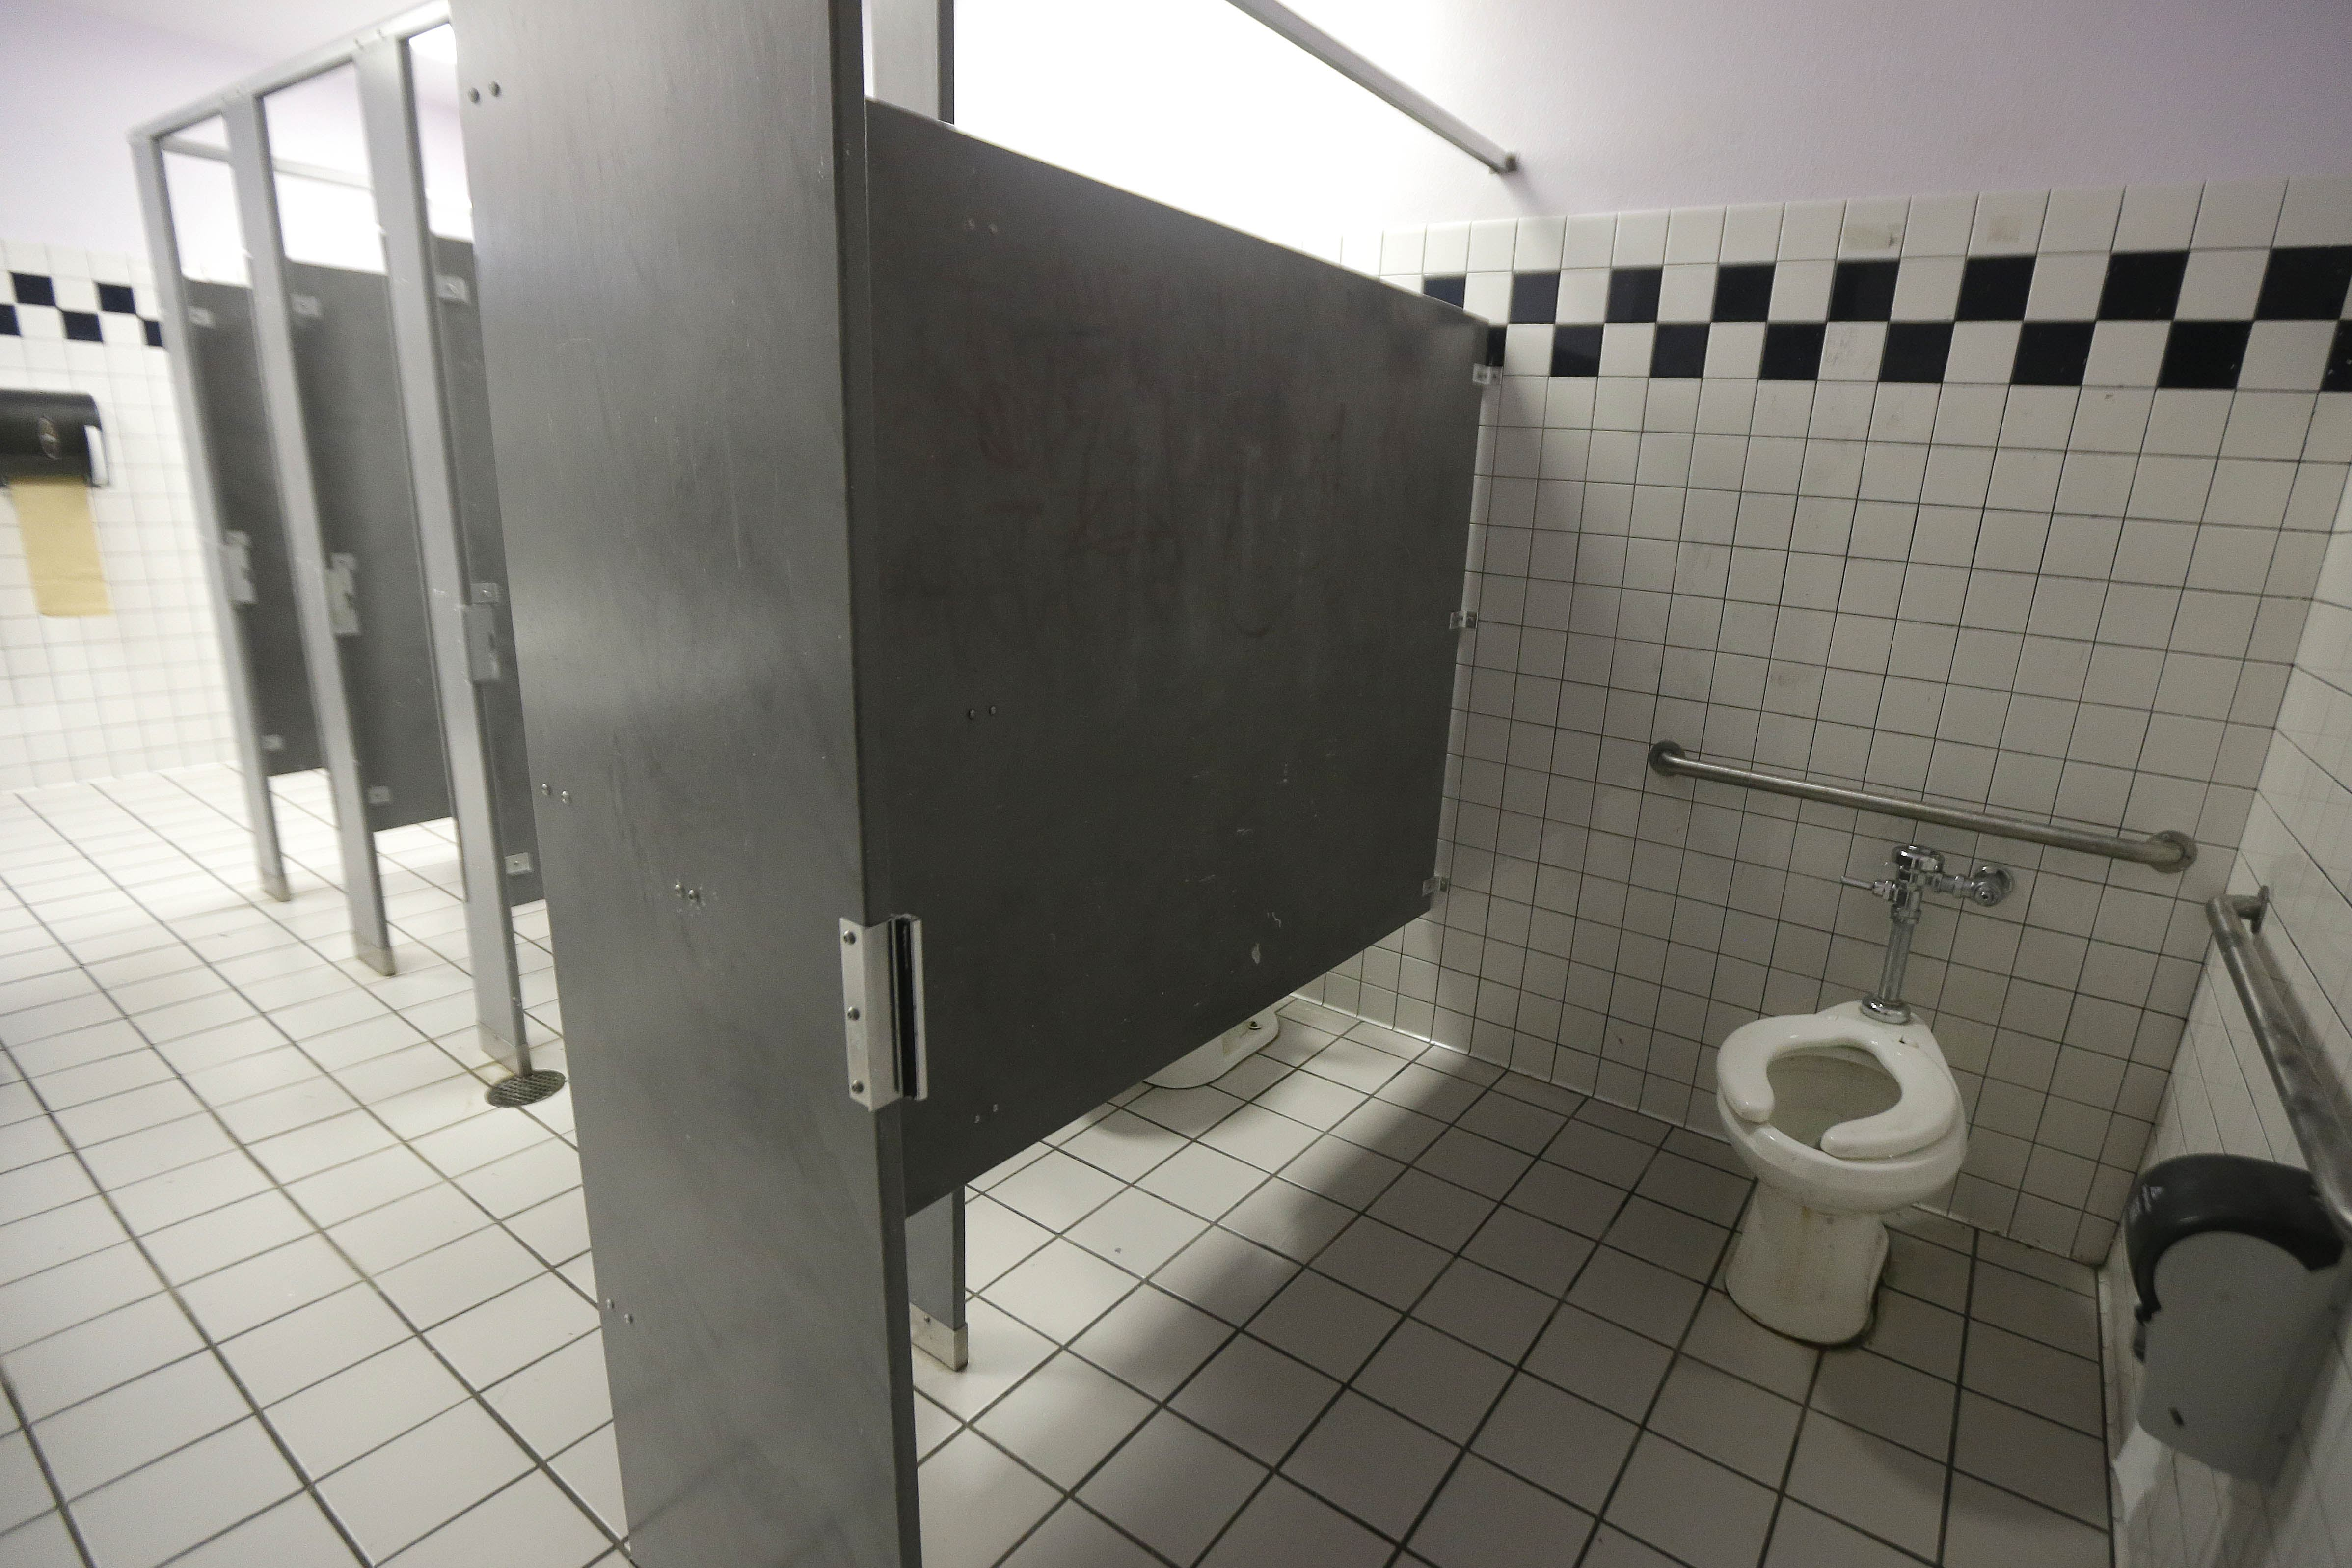 Ask Natalie Mens room is no place for a woman  Pittsburgh PostGazette